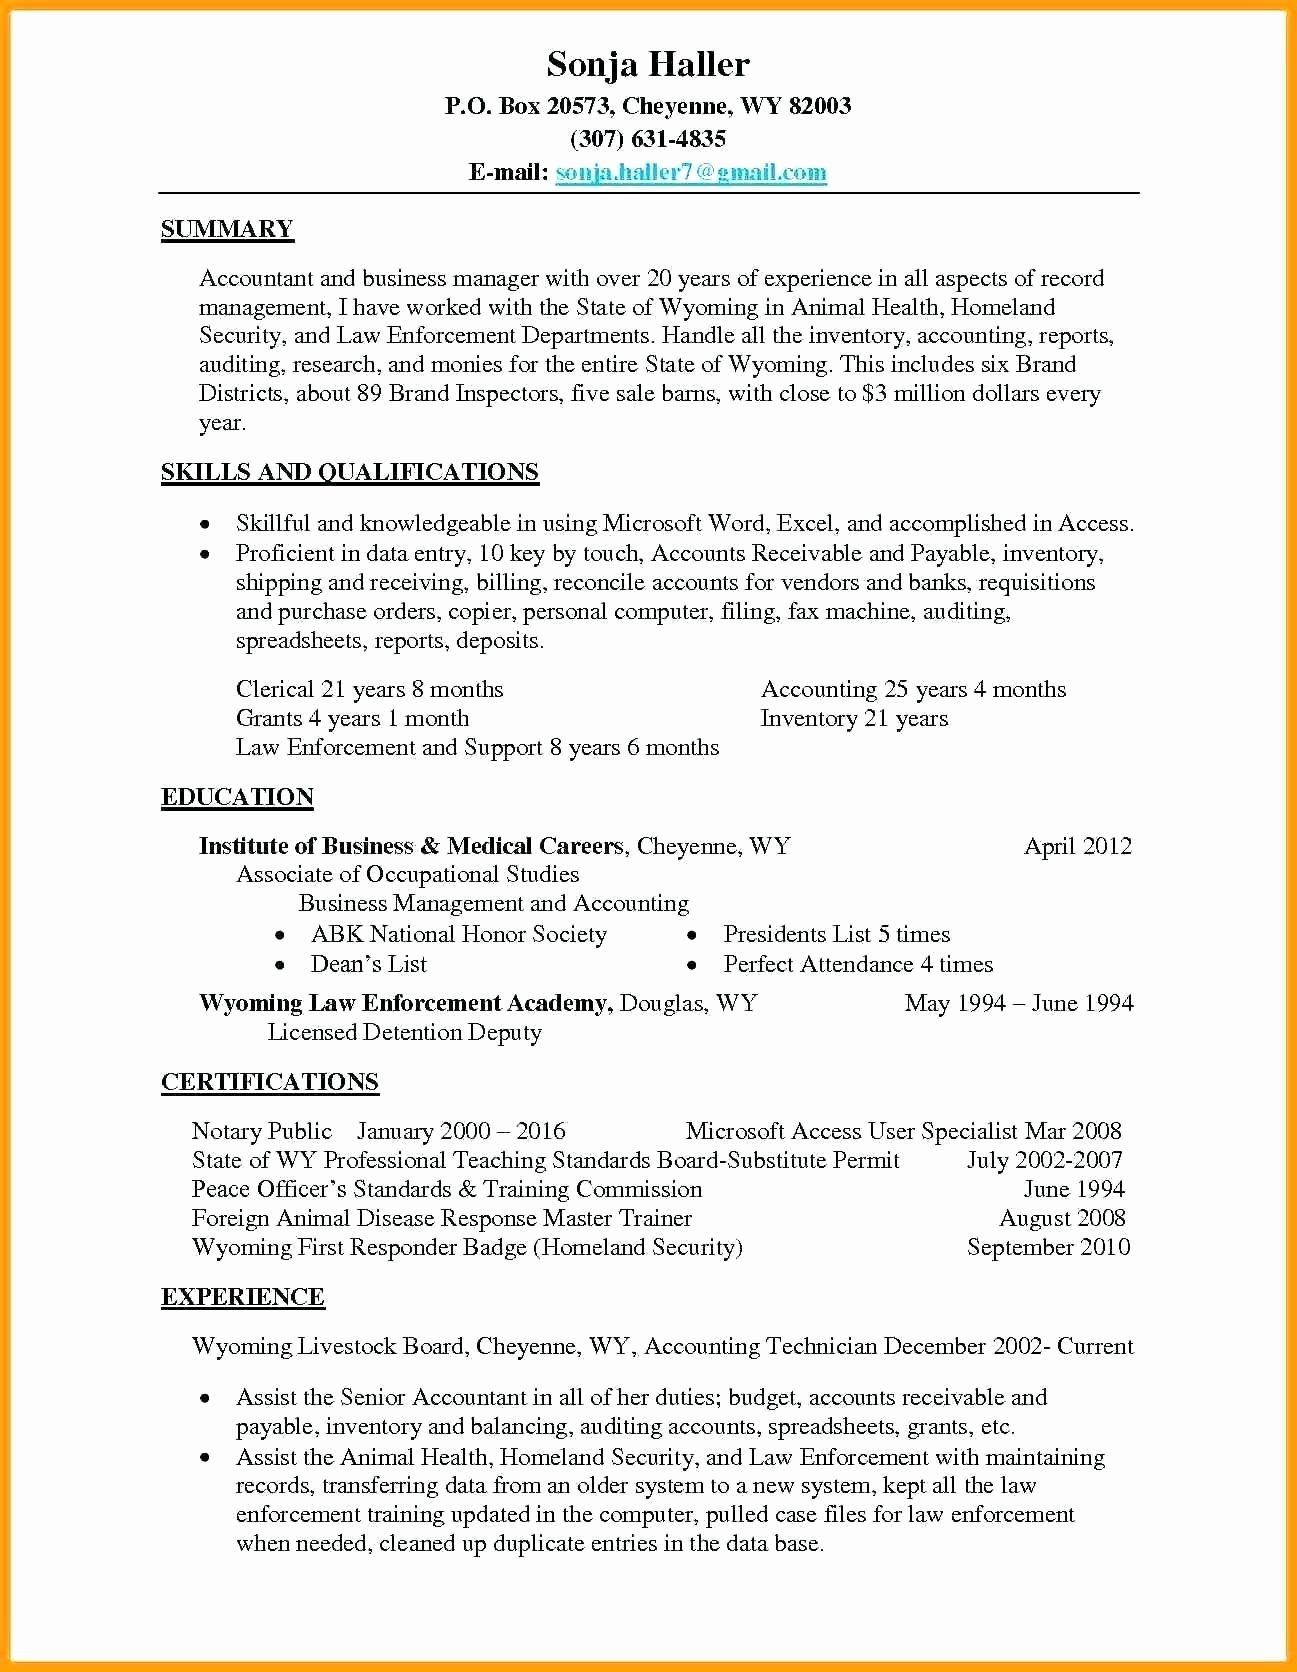 Accounts payable specialist resume fresh resume examples